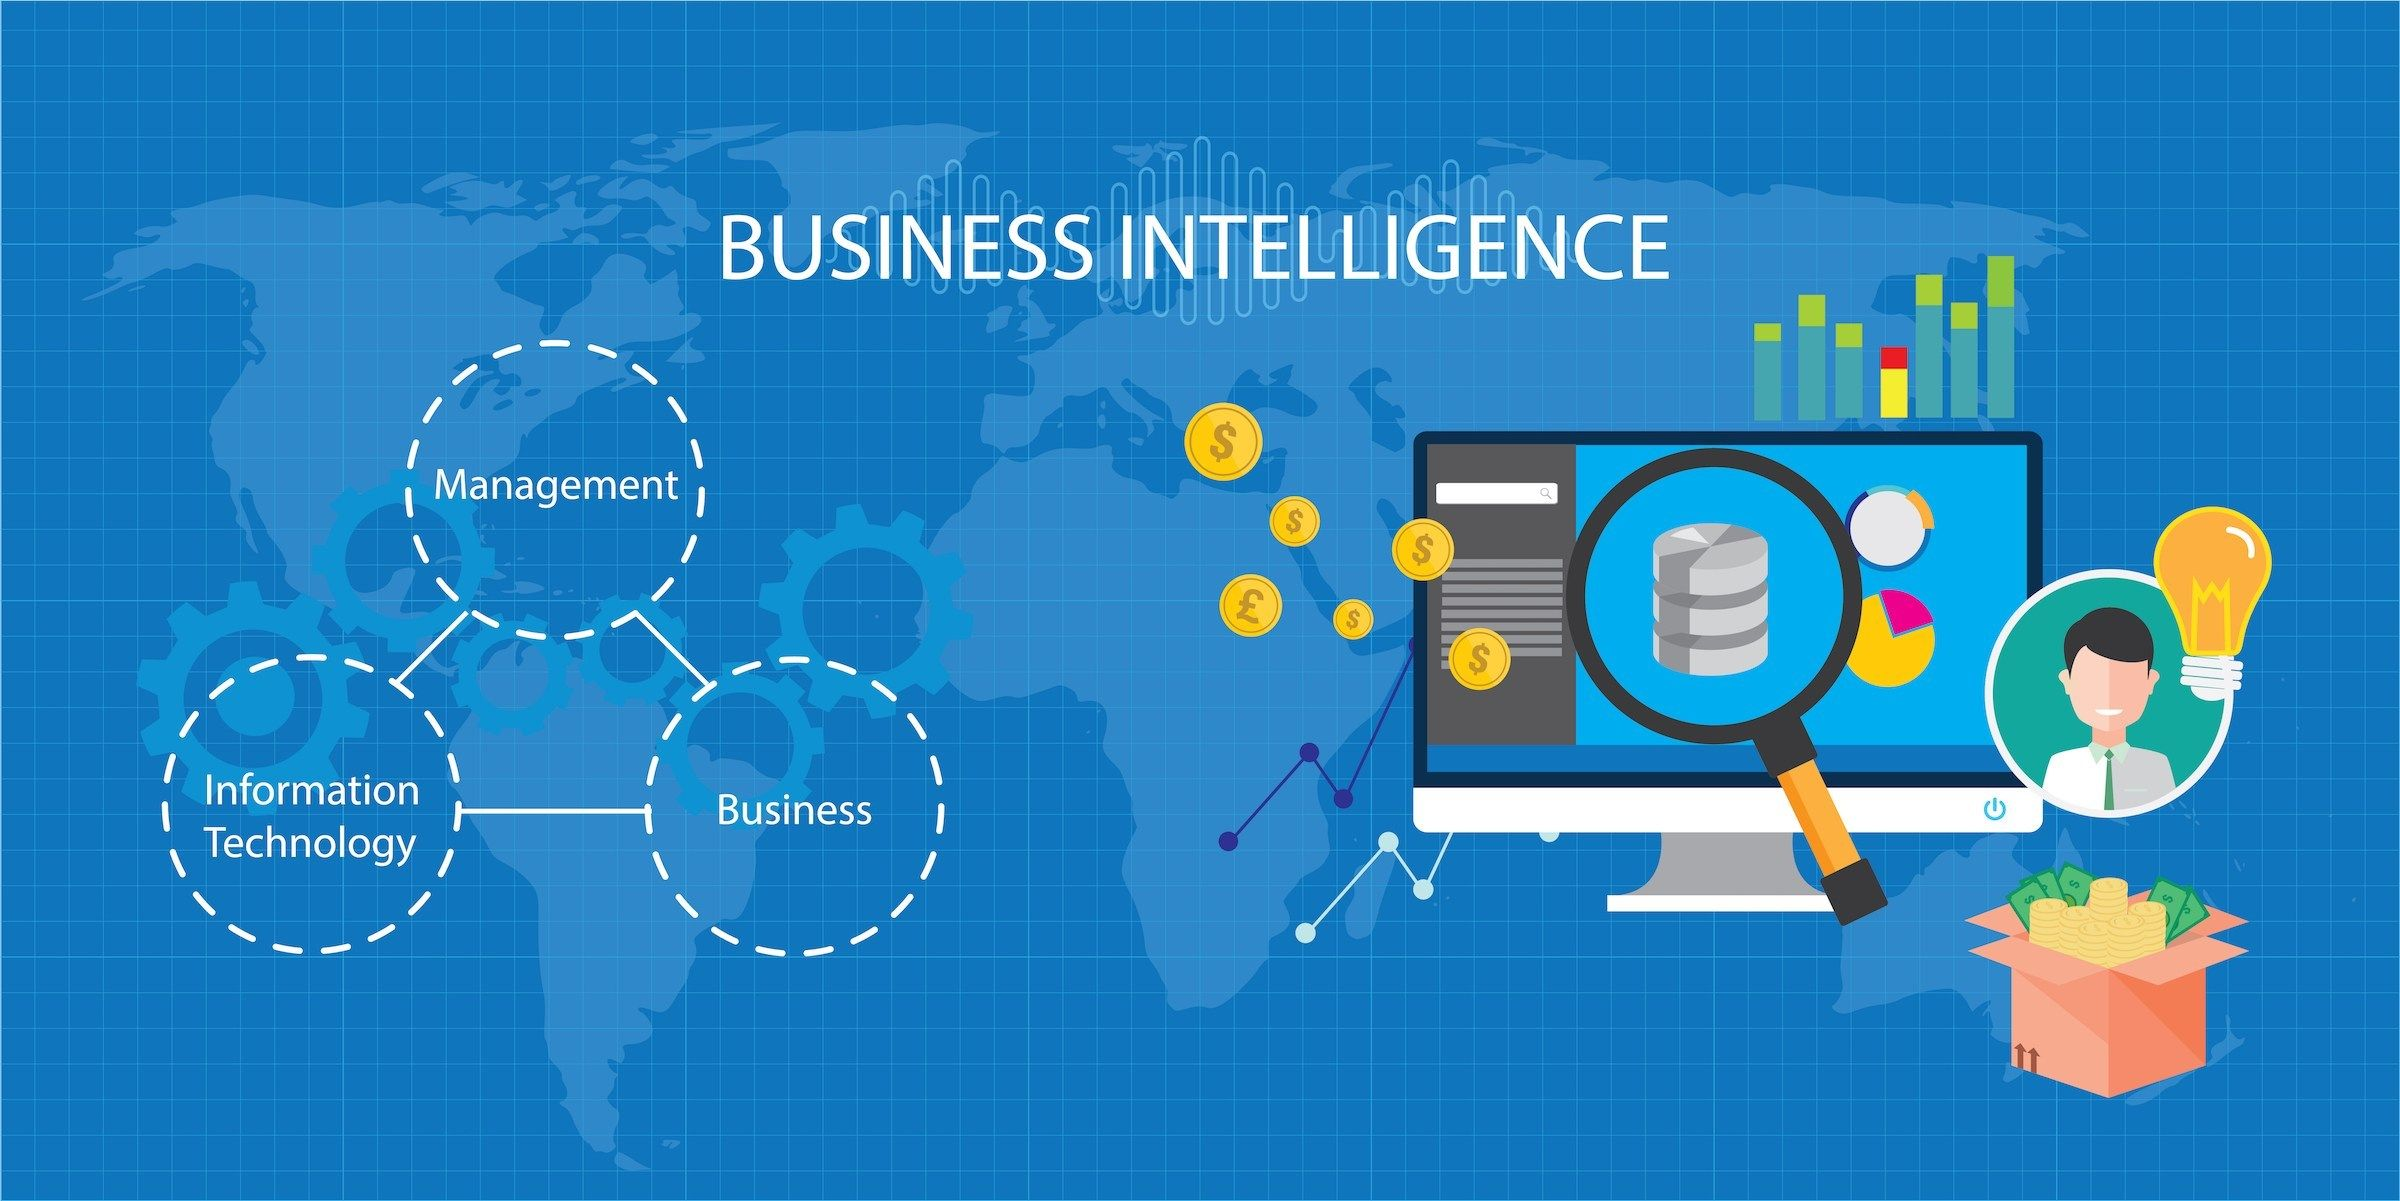 Bi Tool Provider In 2020 Business Intelligence Business Intelligence Solutions Business Intelligence Tools